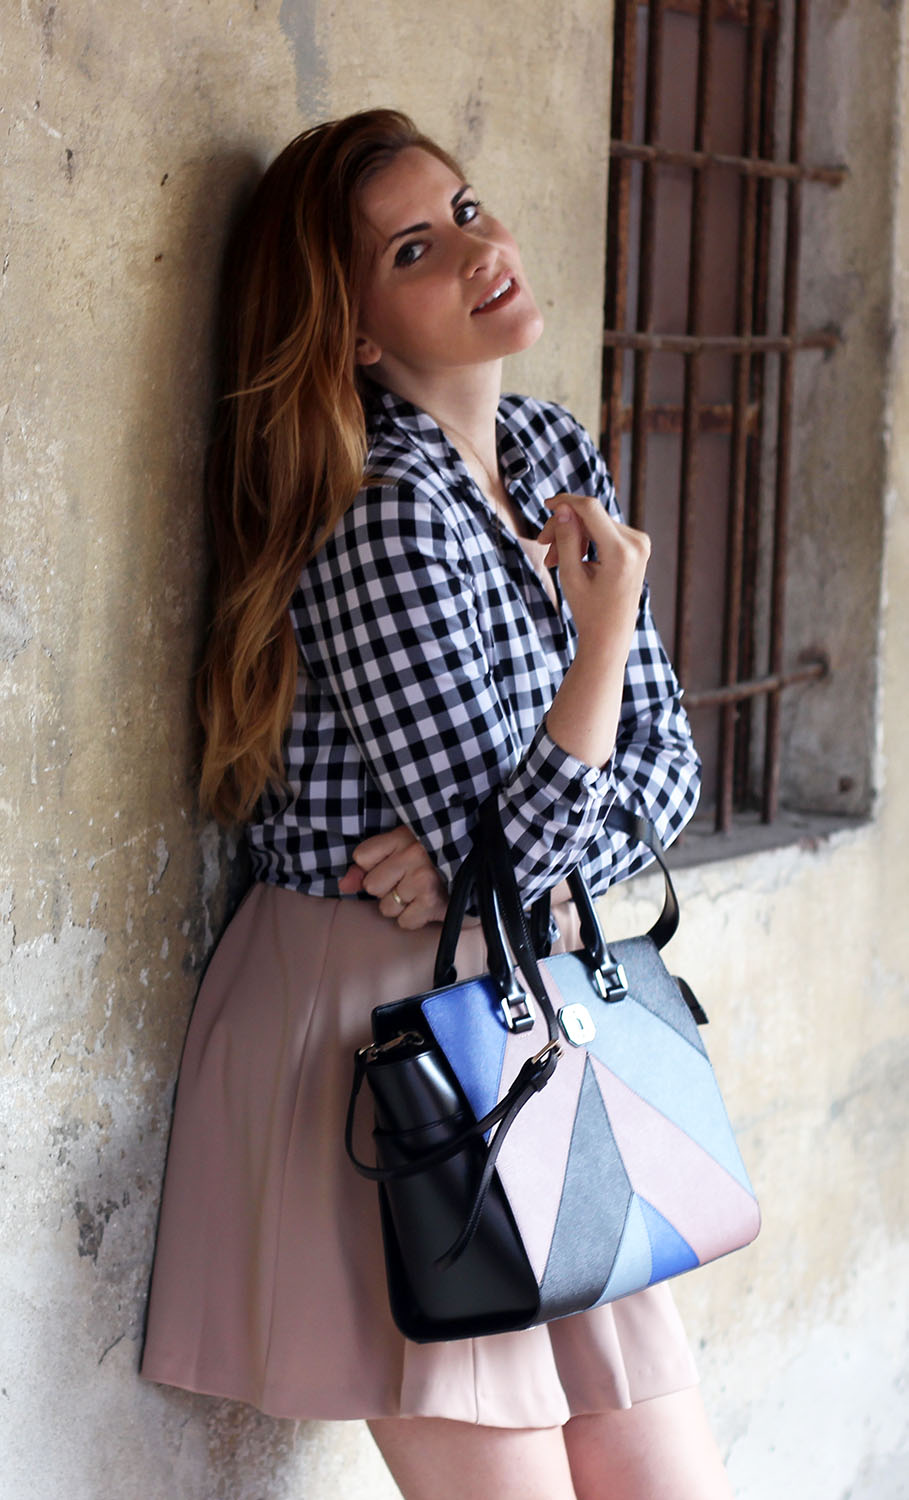 elisabetta bertolini fashion blogger italiane